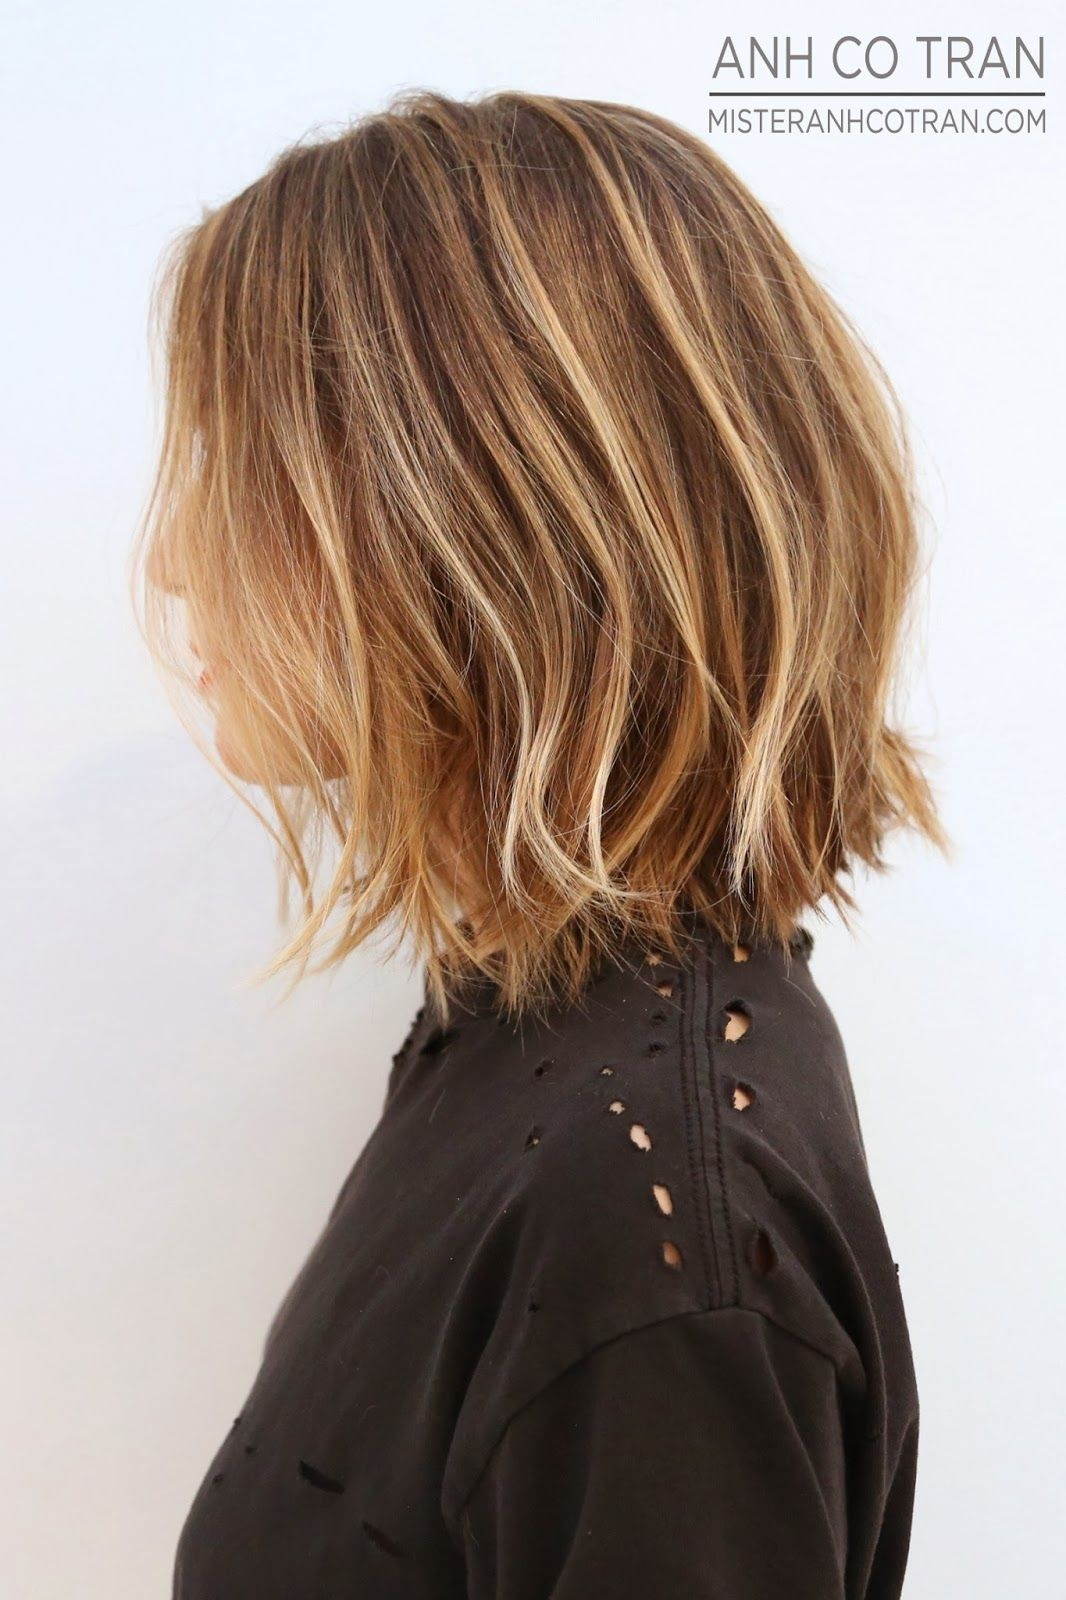 Short choppy bob hair styles pinterest bobs salons and modern